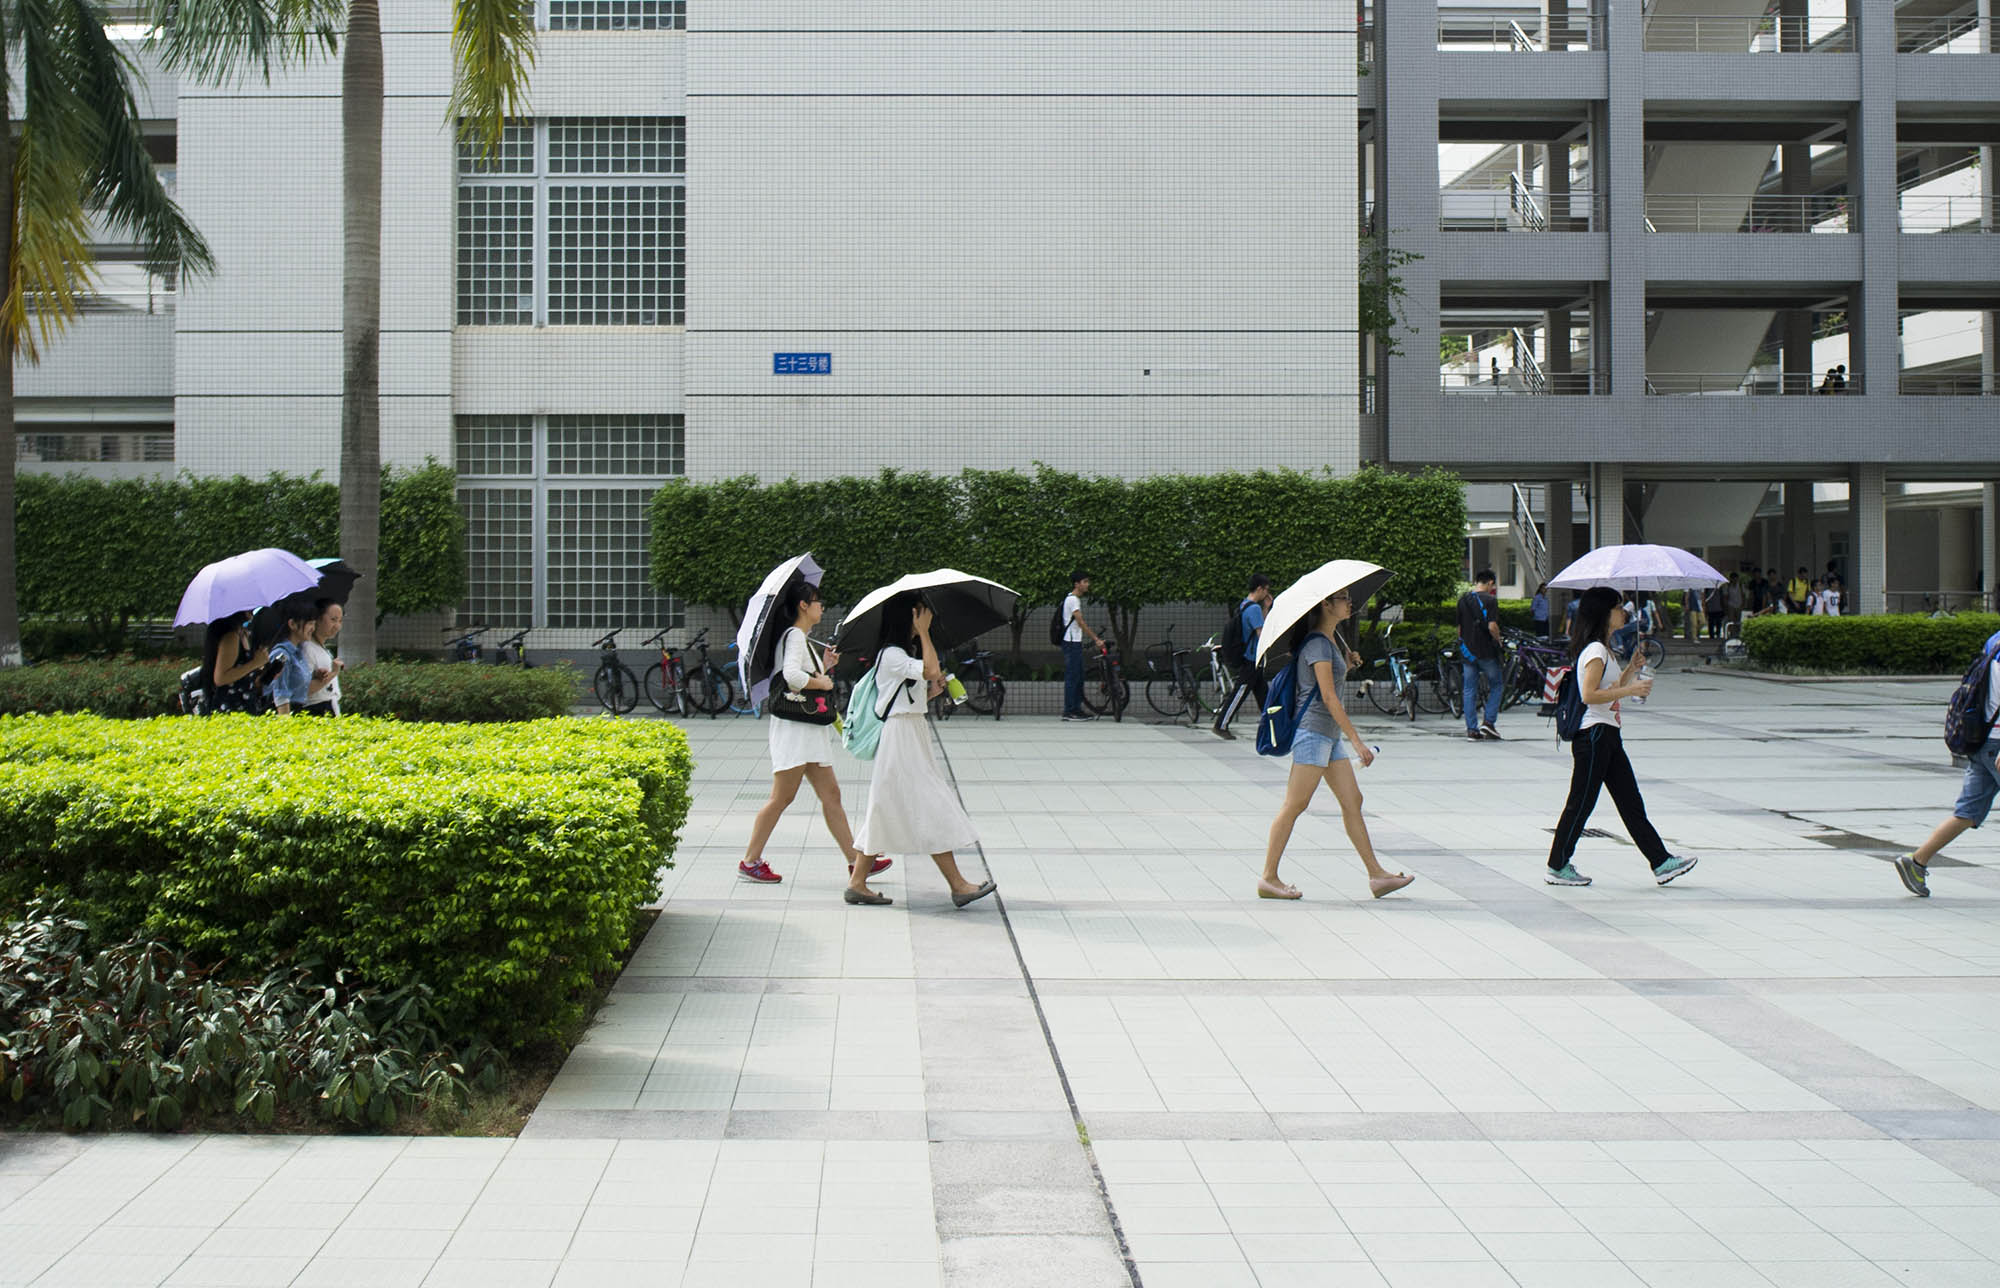 Students with umbrellas in Guangzhou university campus.